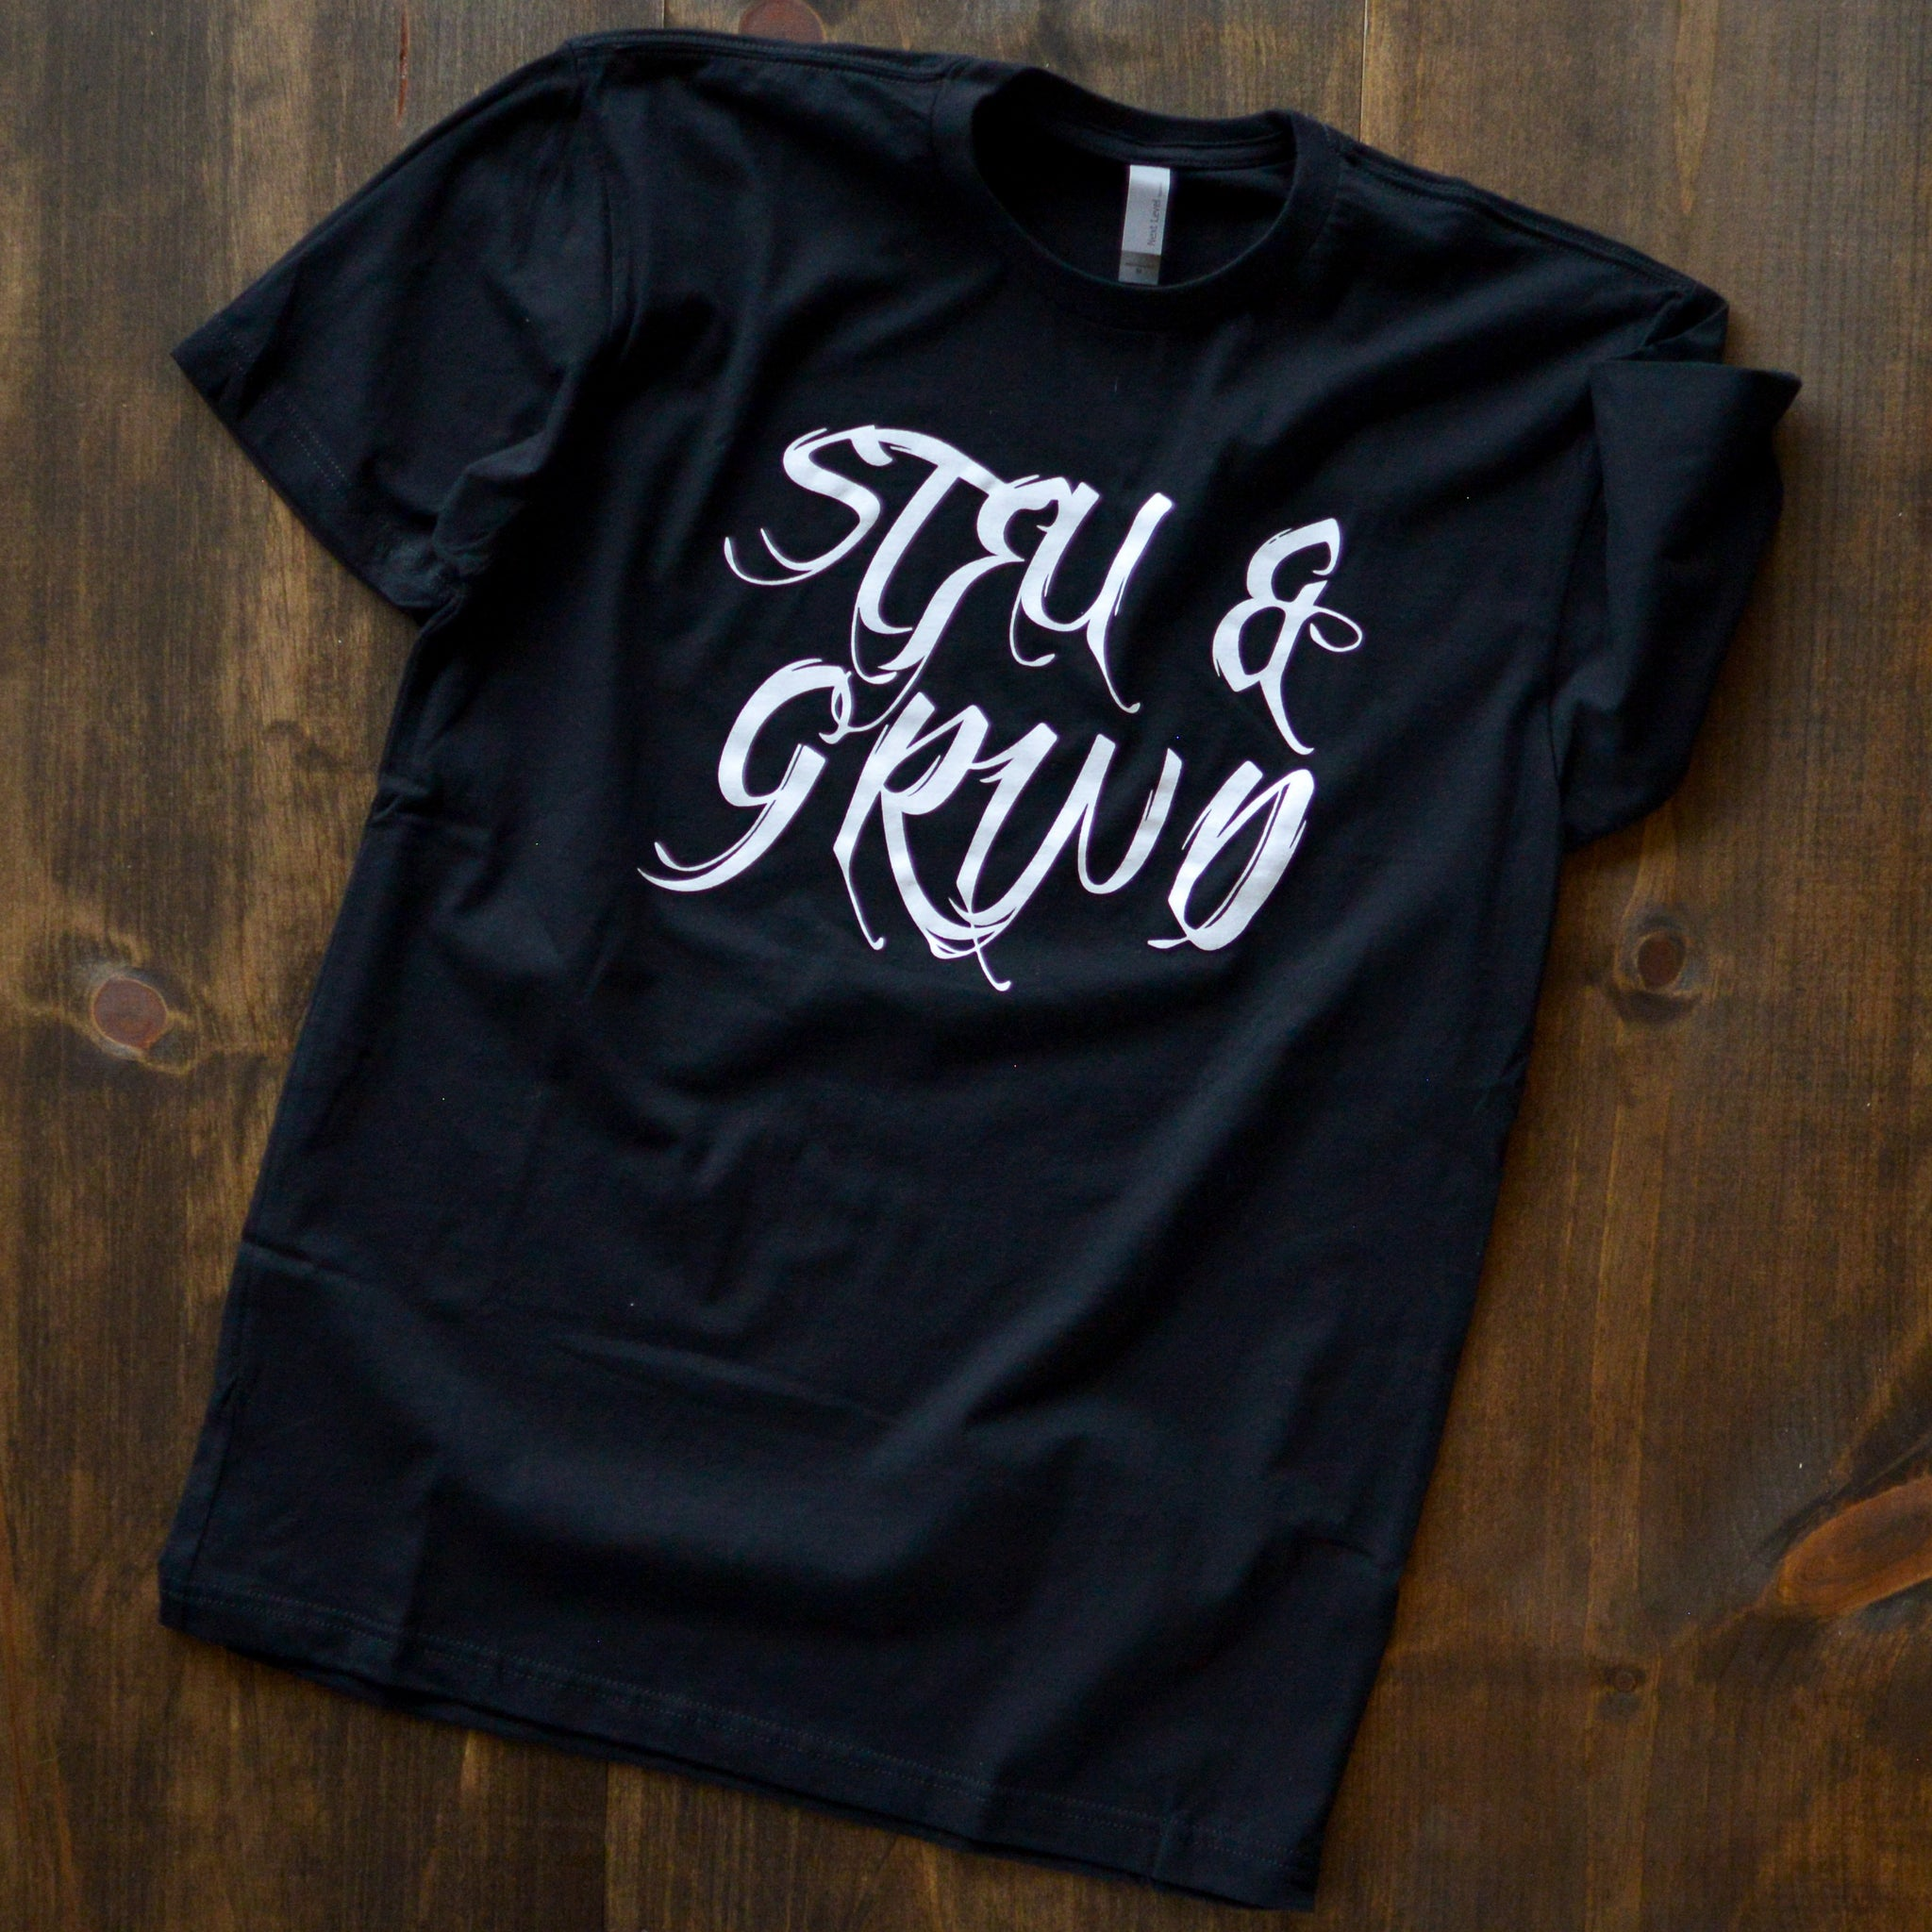 STFU & Grind - No Easy Days Apparel